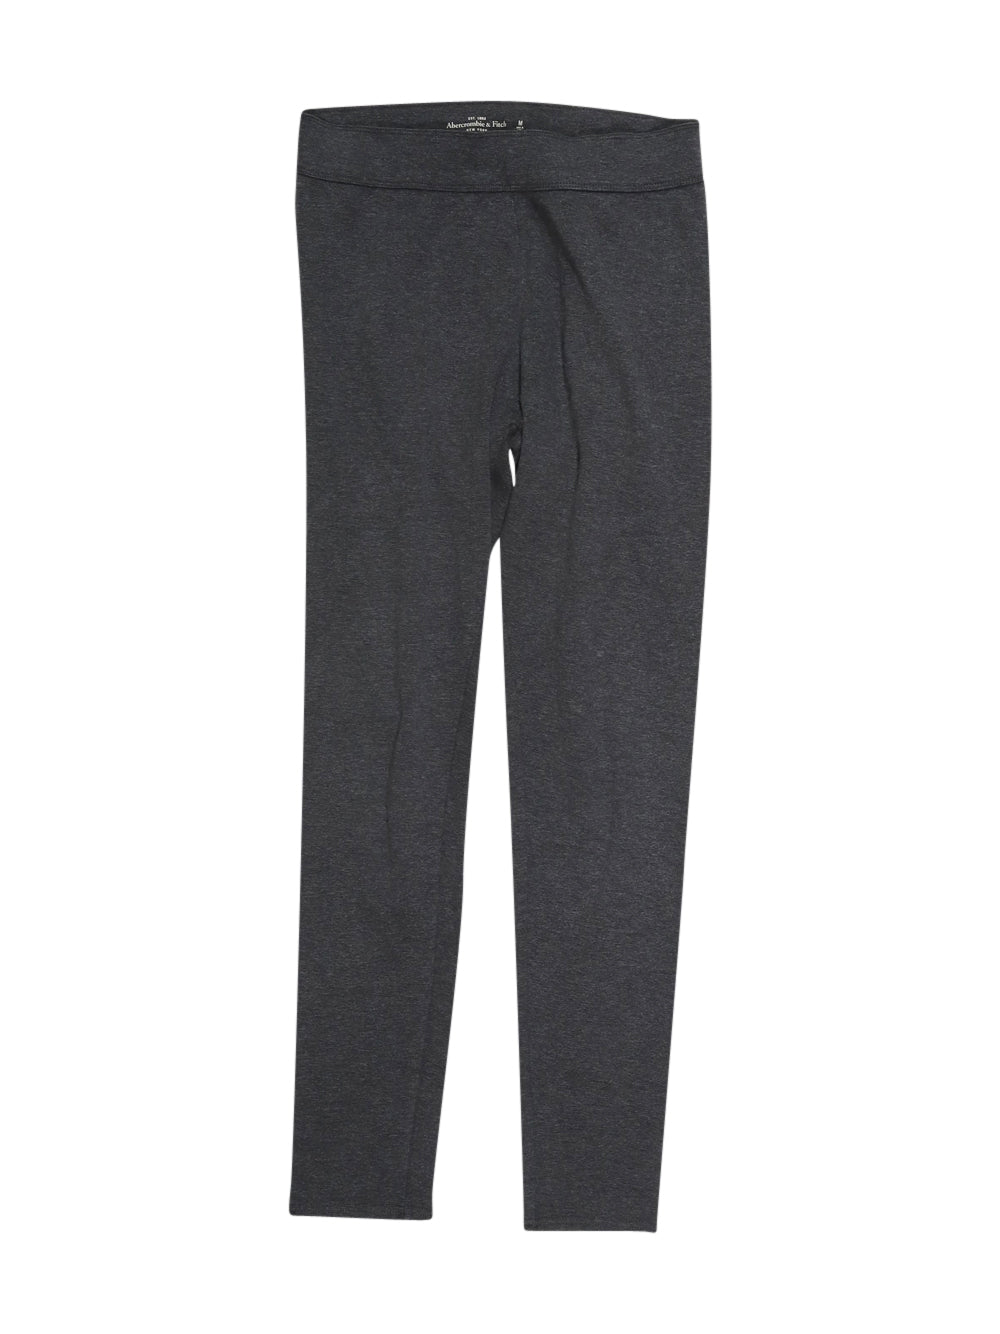 Front photo of Preloved Abercrombie&Fitch Grey Woman's trousers - size 10/M